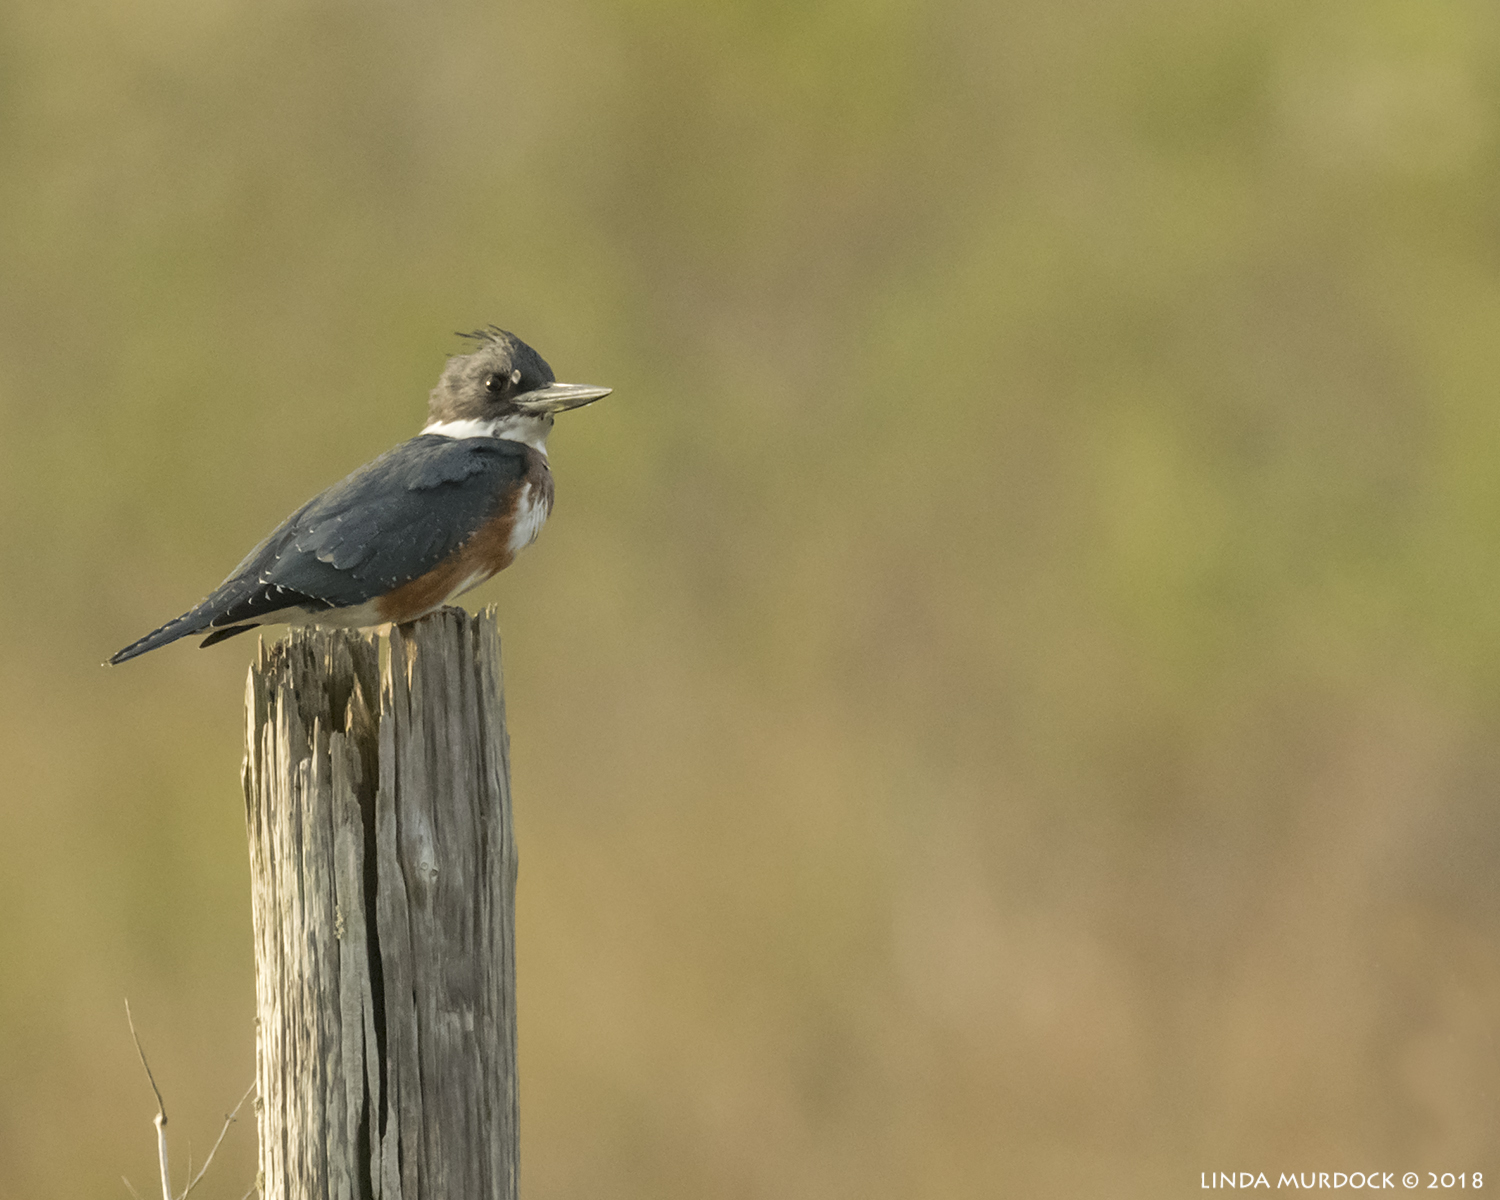 Female Belted Kingfisher resting on post lit by the late afternoon sun   Nikon D850 with NIKKOR 500mm f/4E VR with Nikon 1.4x TC ~ 1/2500 sec f/6.3 ISO 1600; braced in truck window